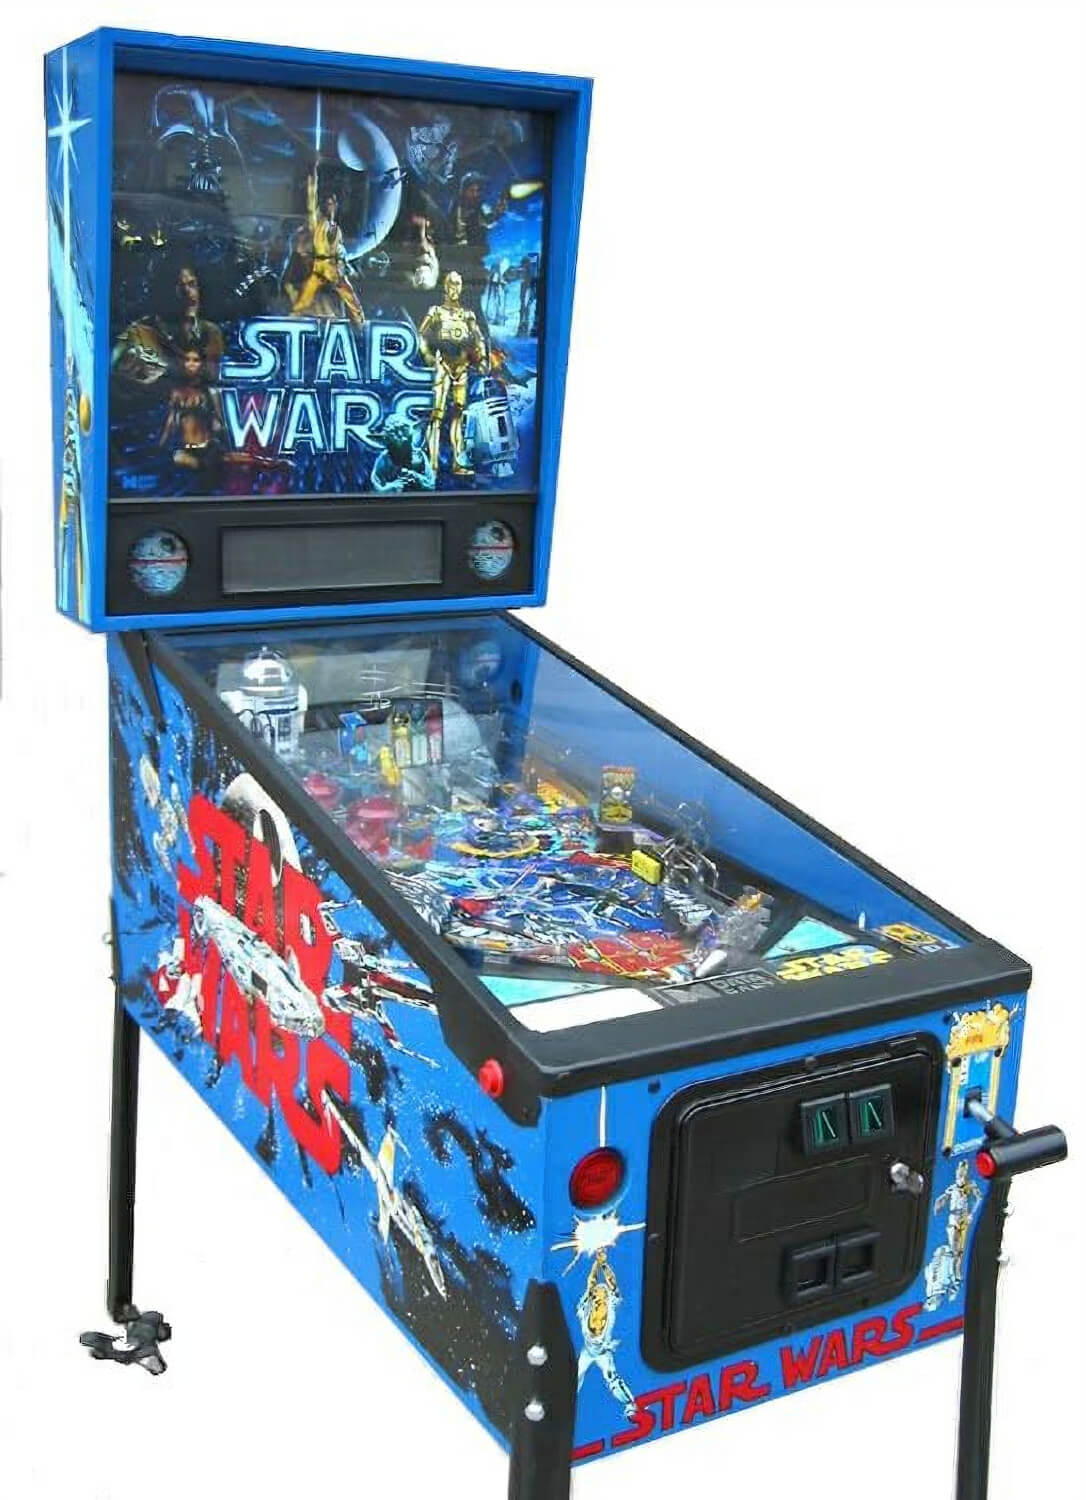 Star Wars Pinball Machine Liberty Games